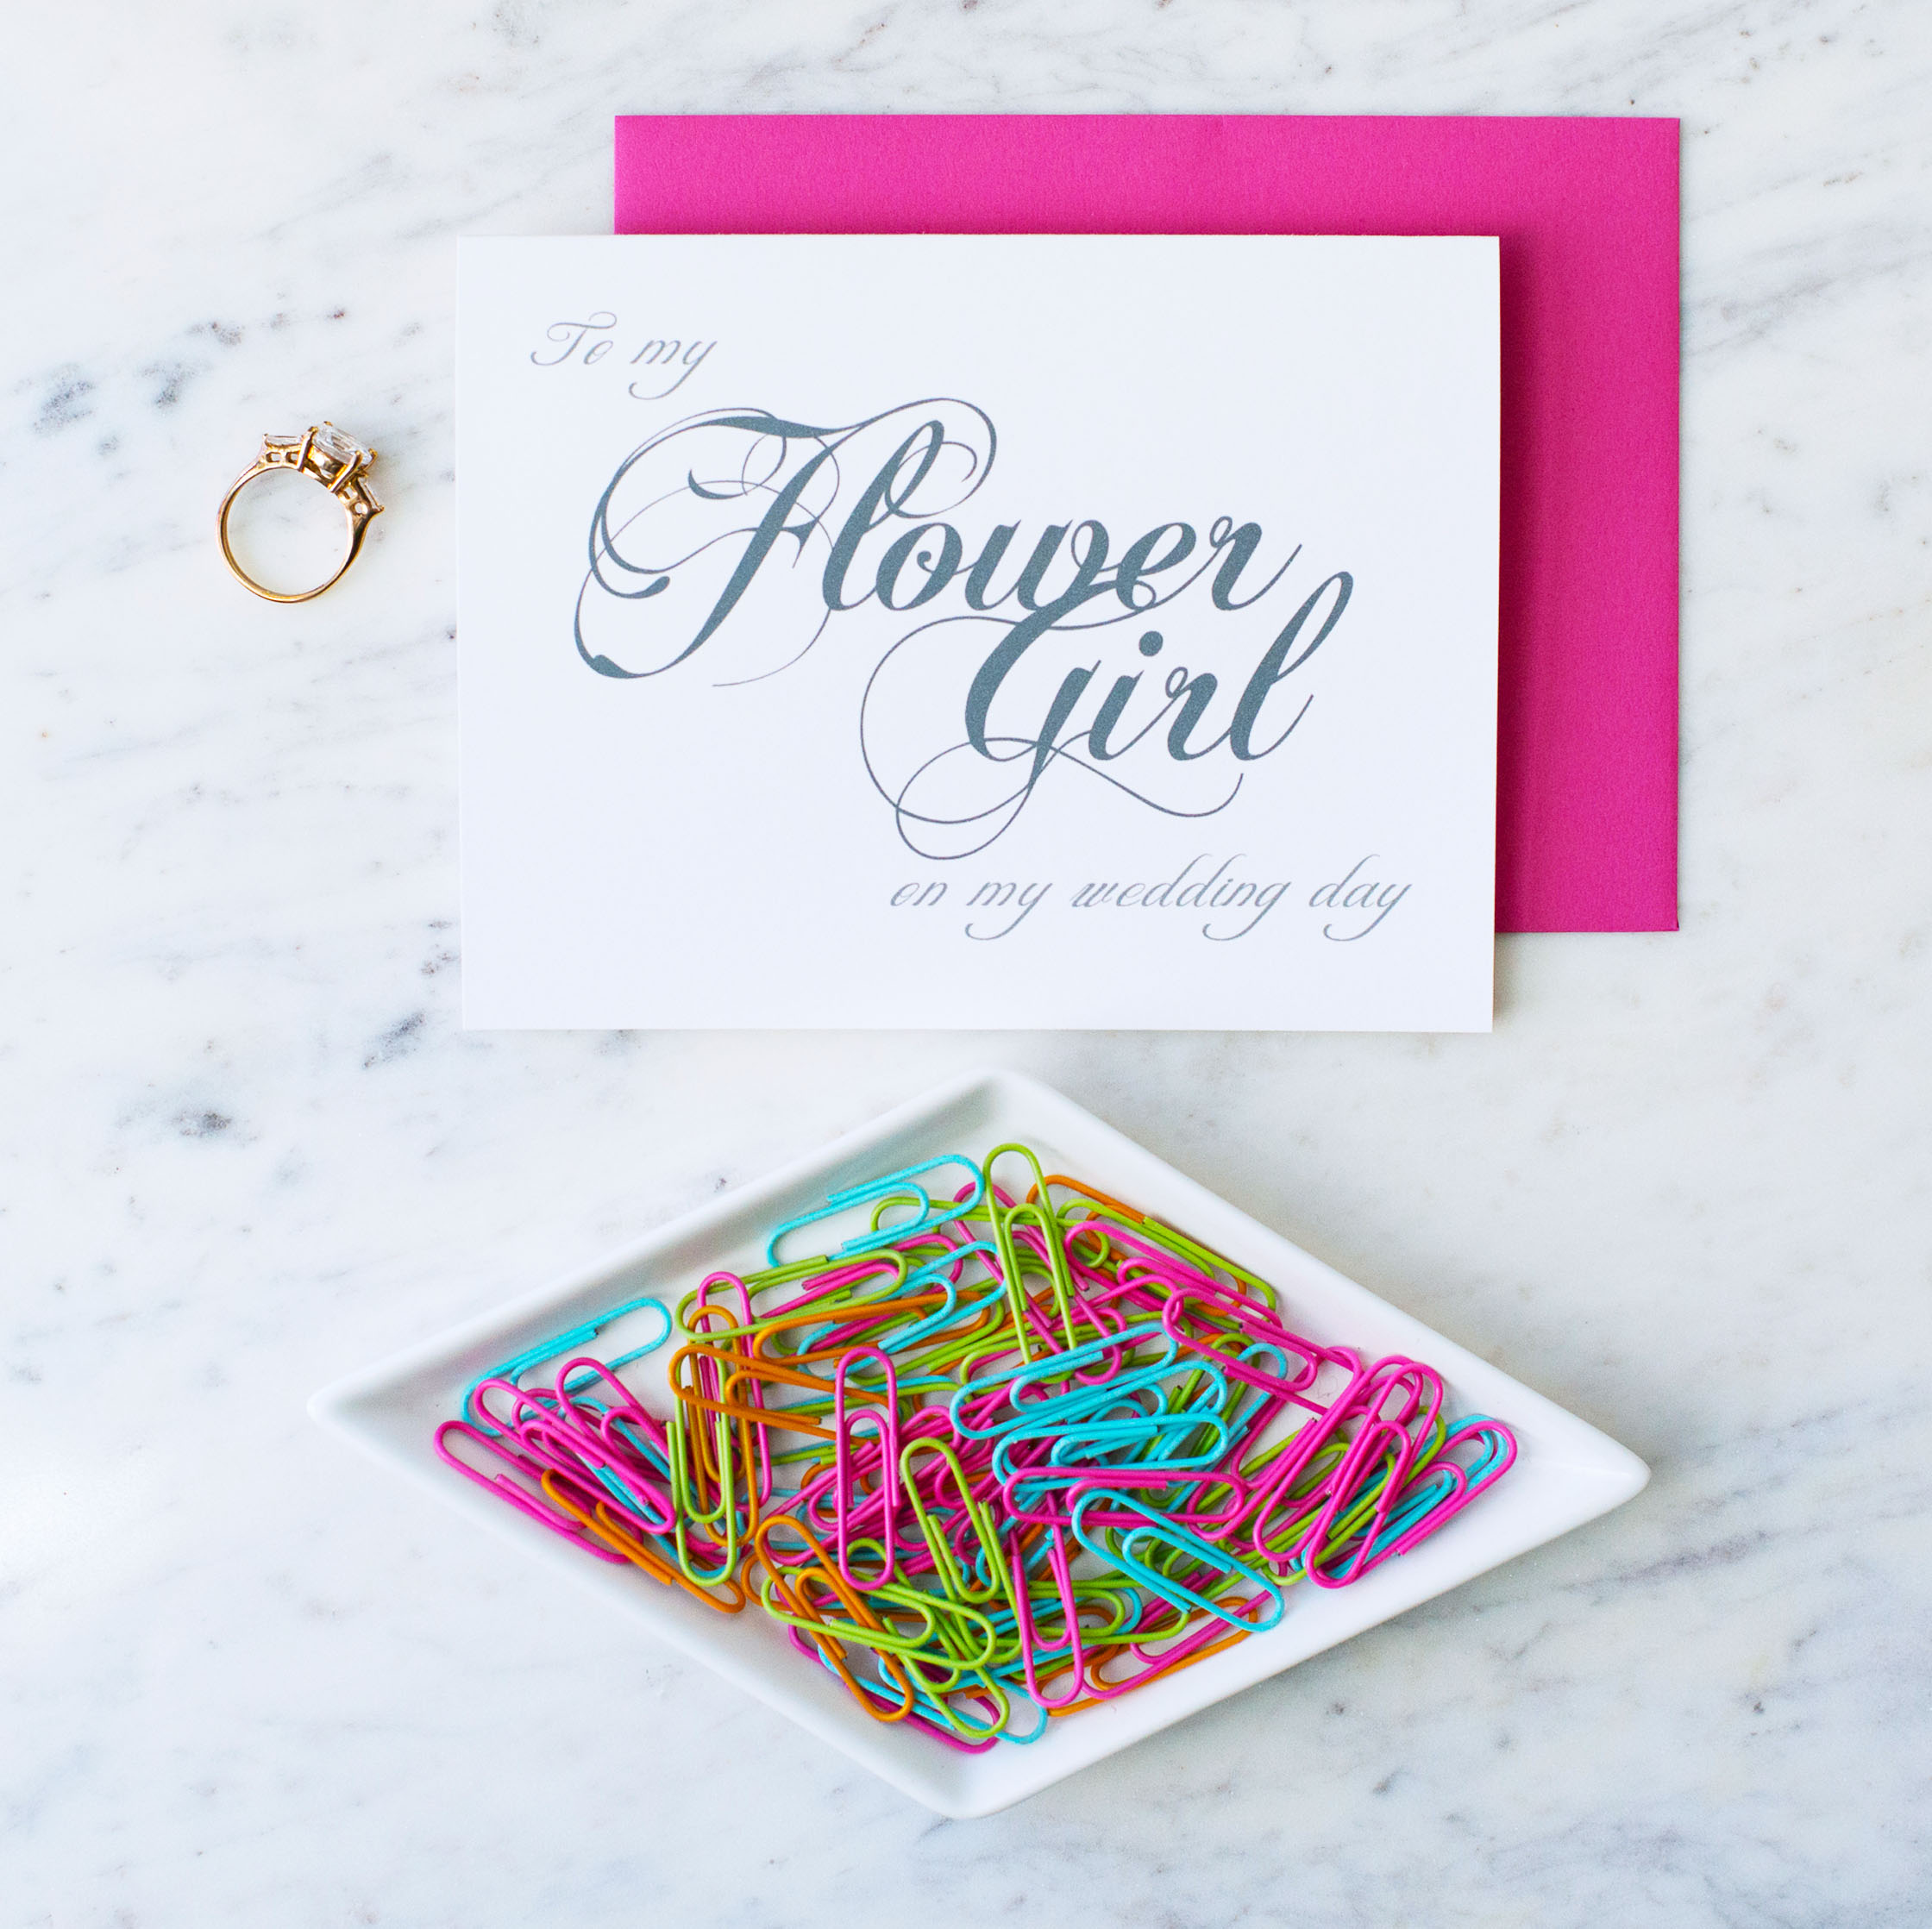 Squarespace Name and Note.jpgEnvelope Colors.jpg Squarespace Main Photo.jpgSquarespace Name and Note.jpgEnvelope Colors.jpg To My Flower Girl On My Wedding Day Card